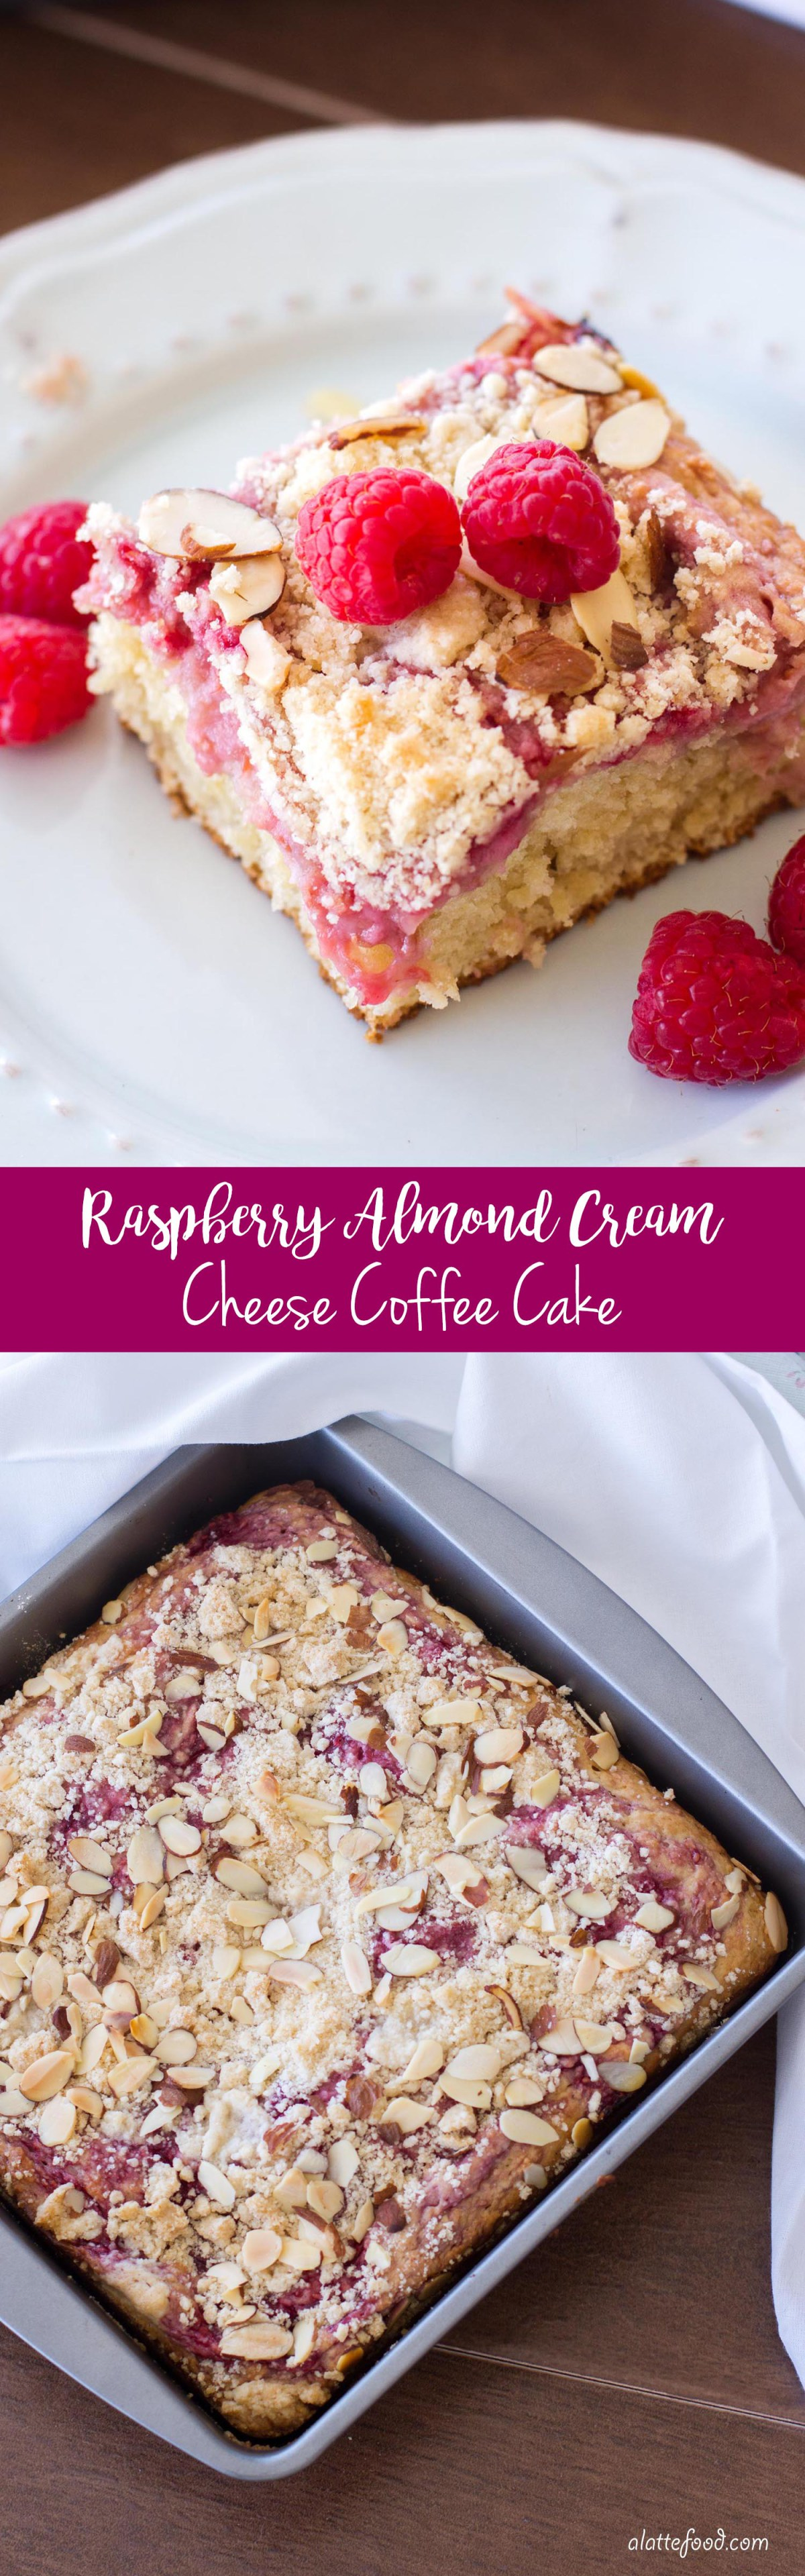 This easy raspberry coffee cake recipe is swirled with